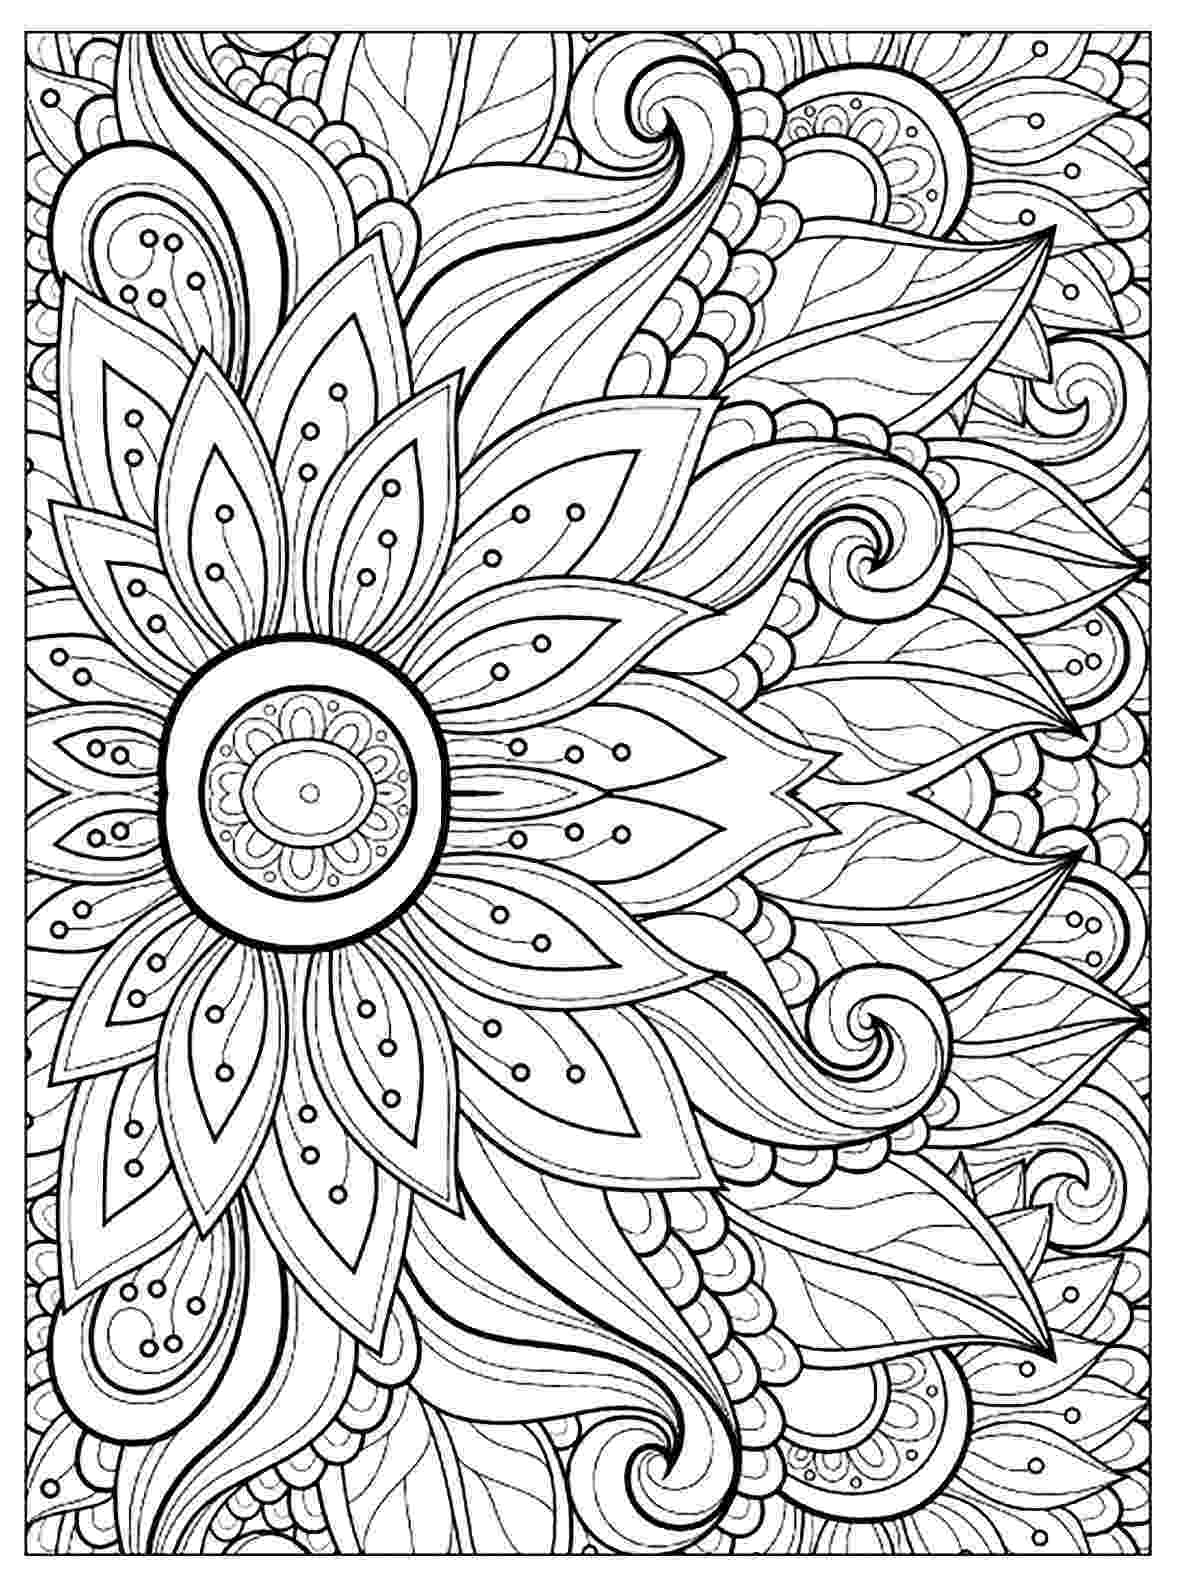 coloring flowers flowers to download for free flowers kids coloring pages flowers coloring